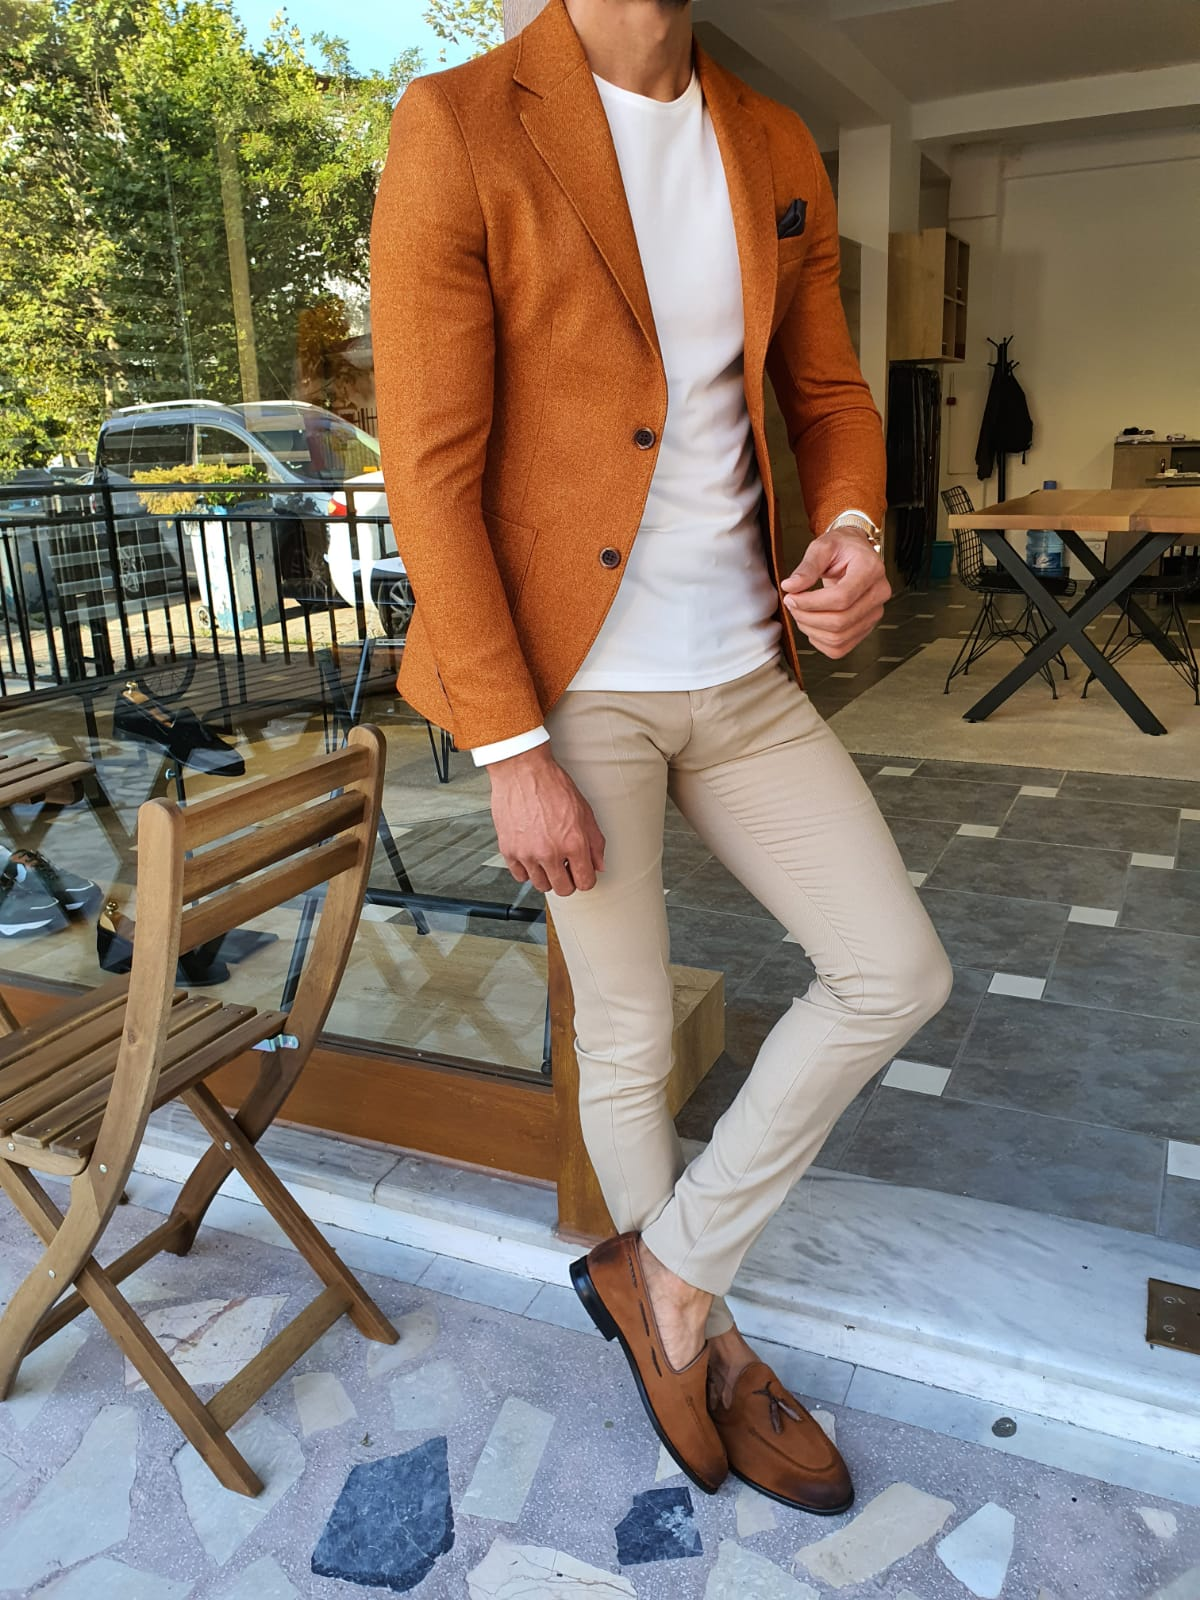 10 Men's Style Tips To Look Powerful by GentWith Blog